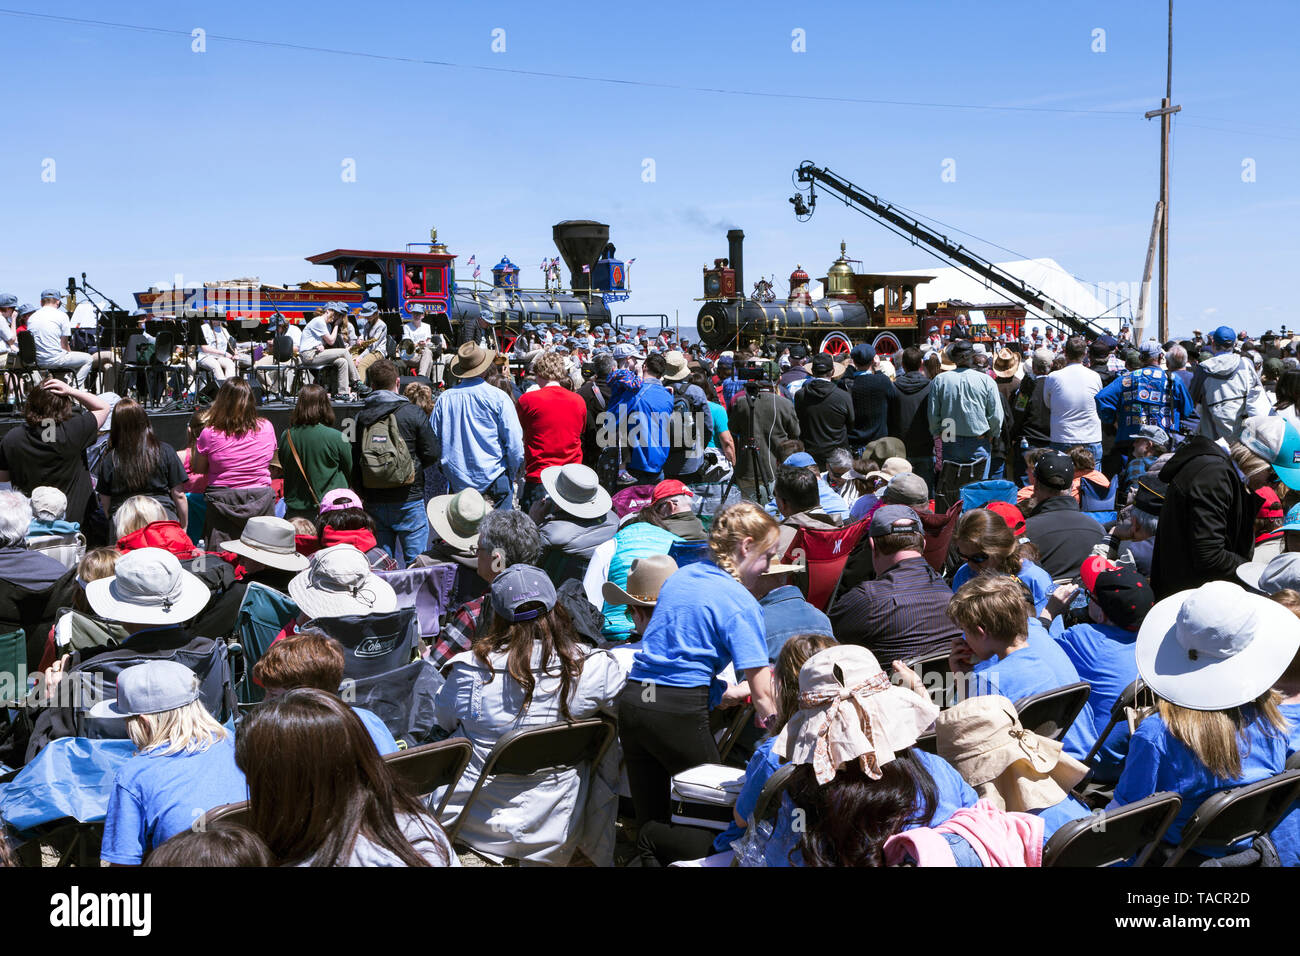 Author Jon Meachum speaks from the podium during the 150th anniversary celebration of the completion of the Transcontinental Railroad on May 10, 2019  - Stock Image